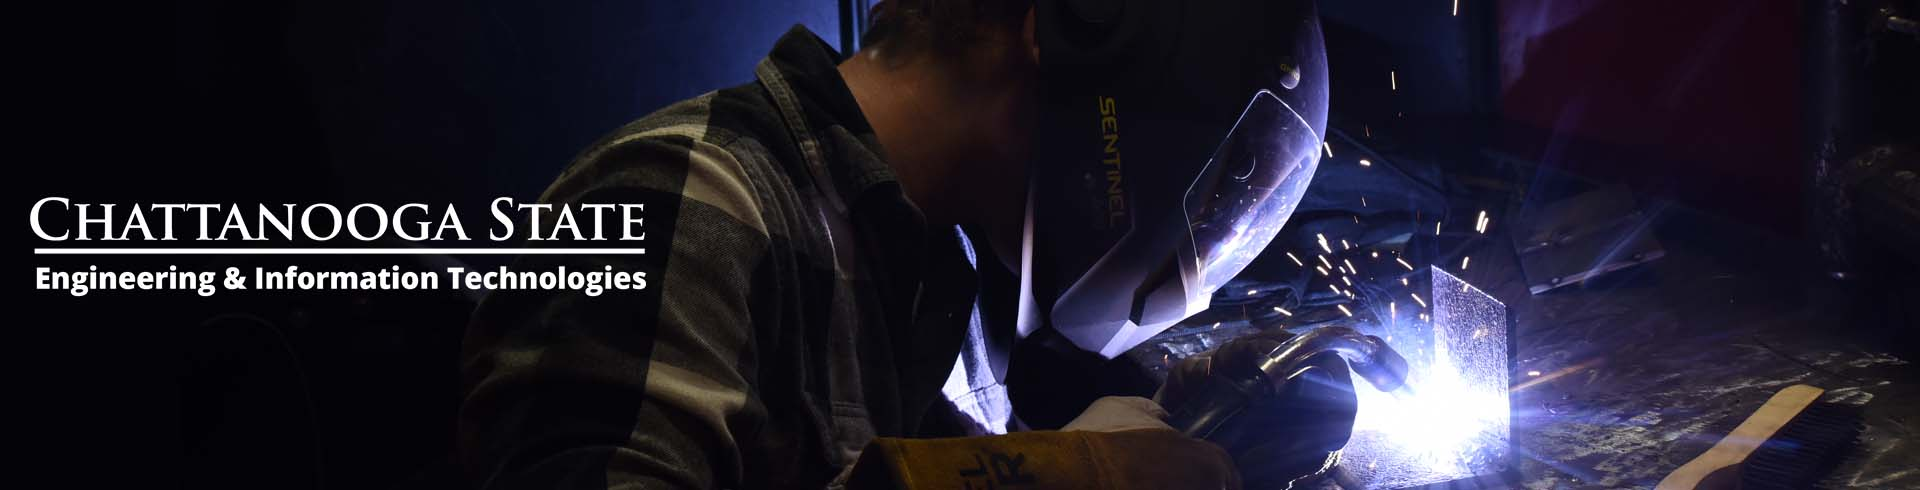 photo of person welding